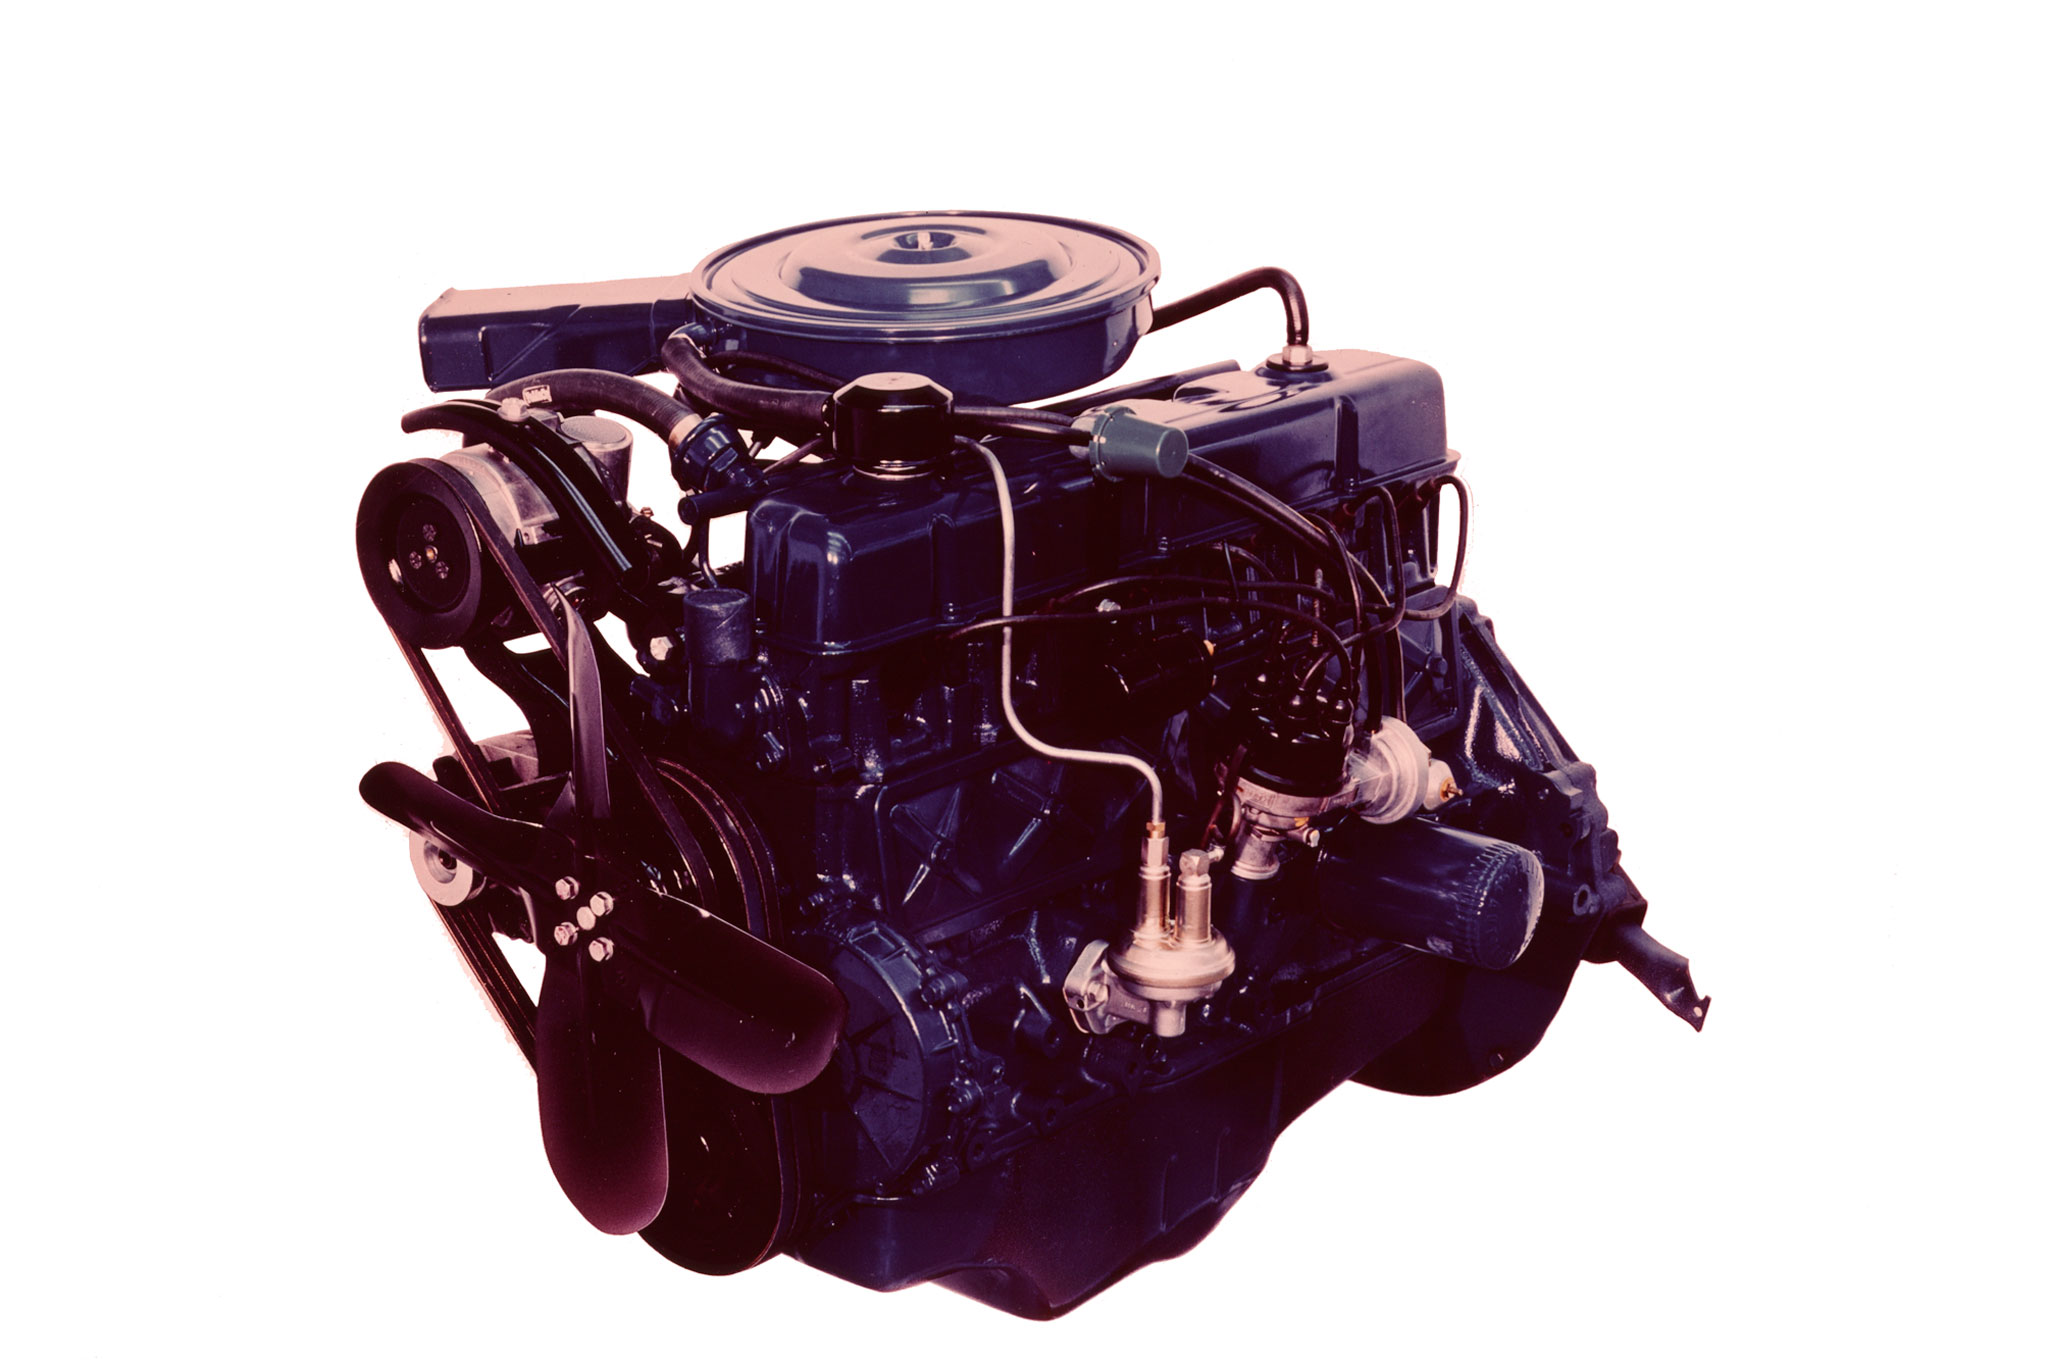 Ford I Engine